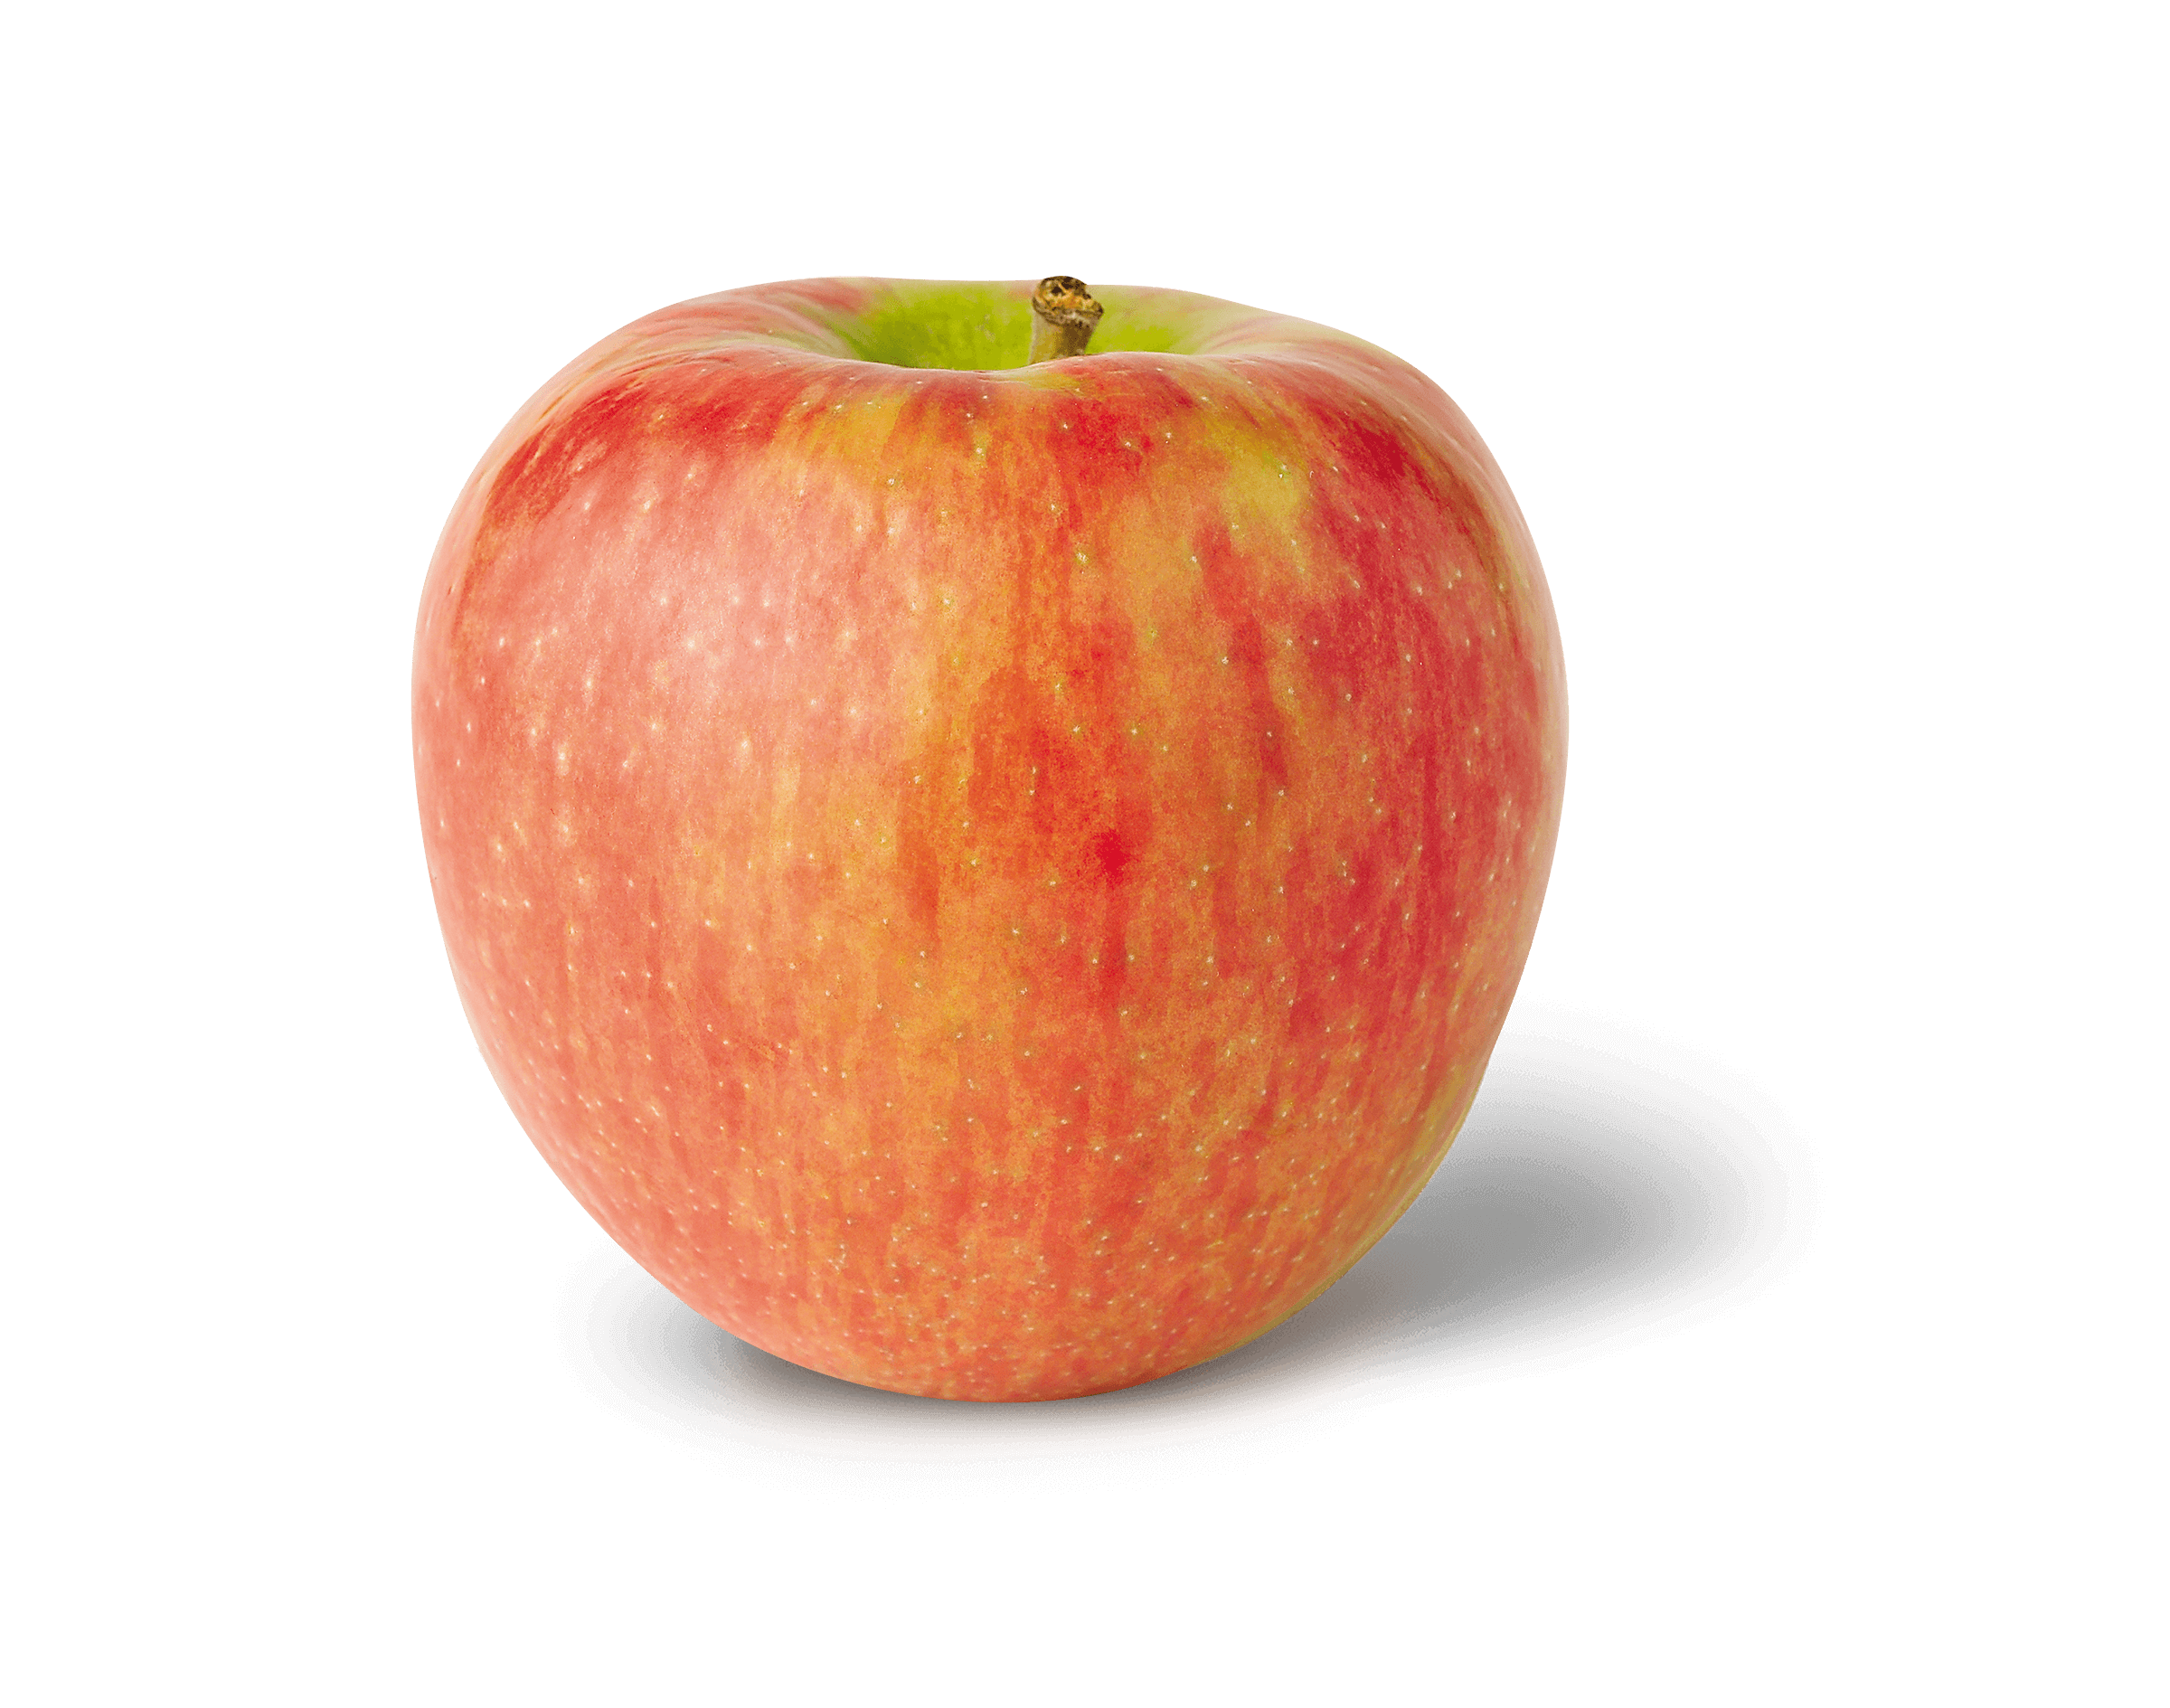 Apple Photo - Honeycrisp